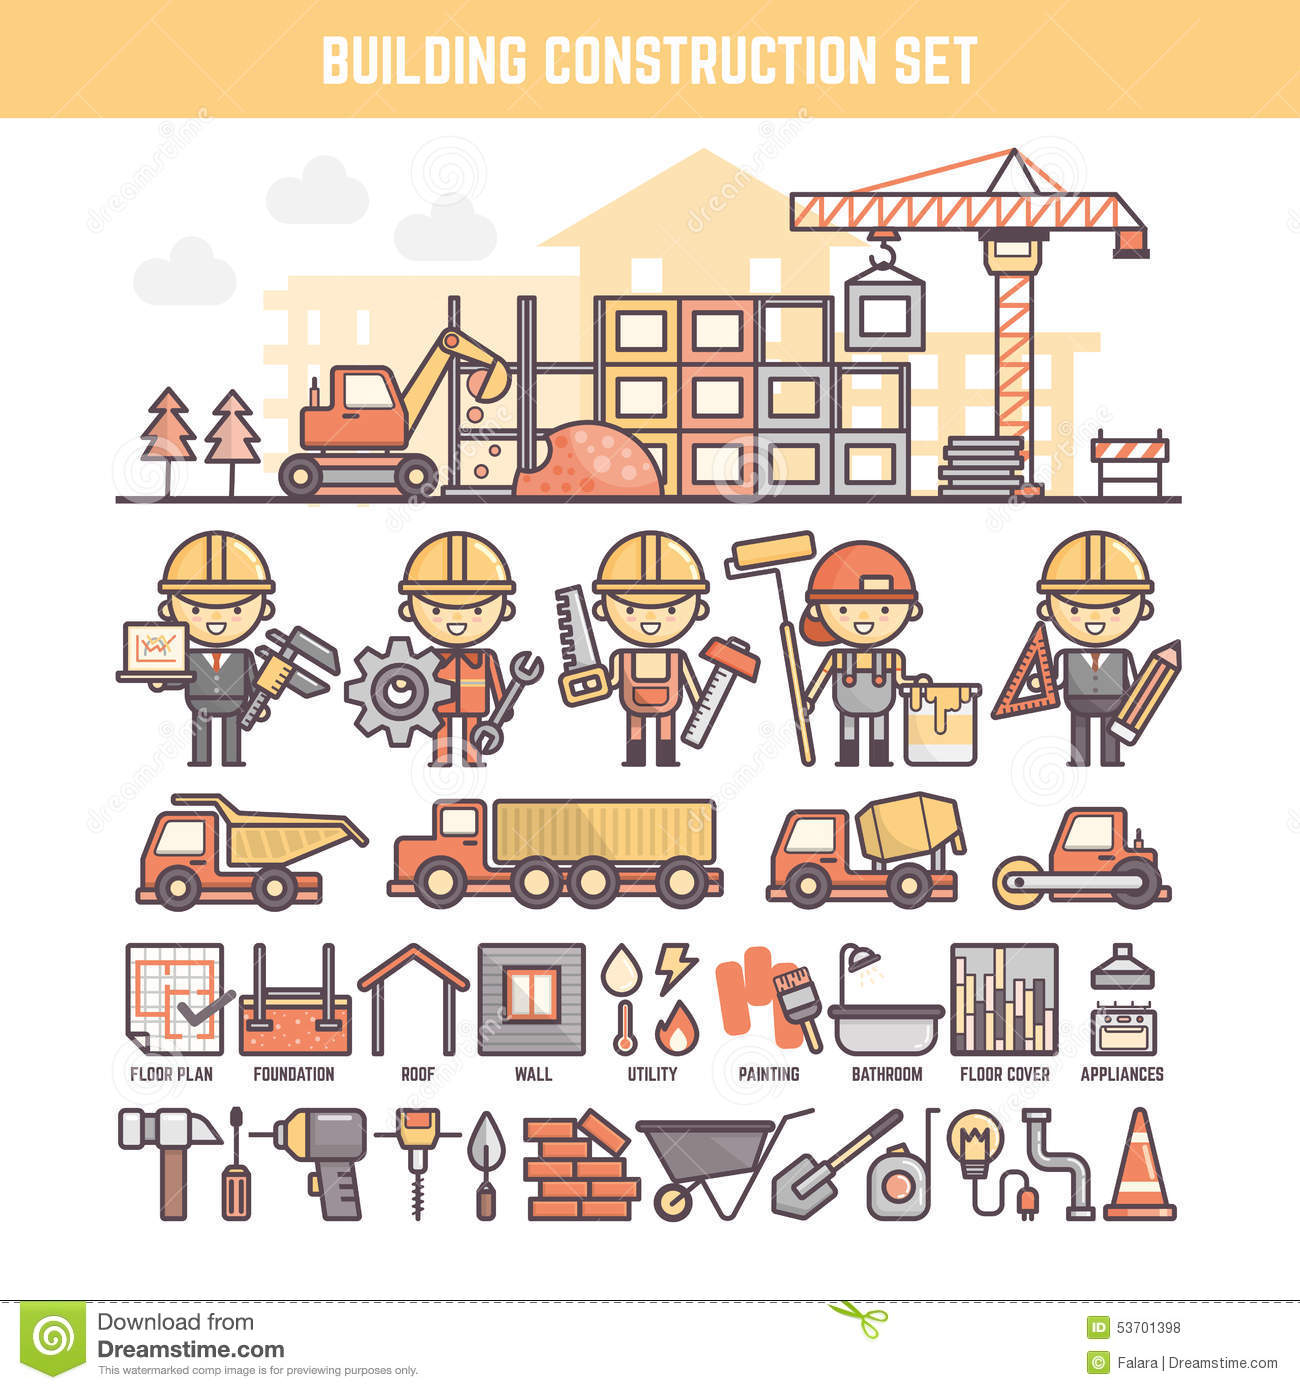 Construction Steps For Building A House Pdf